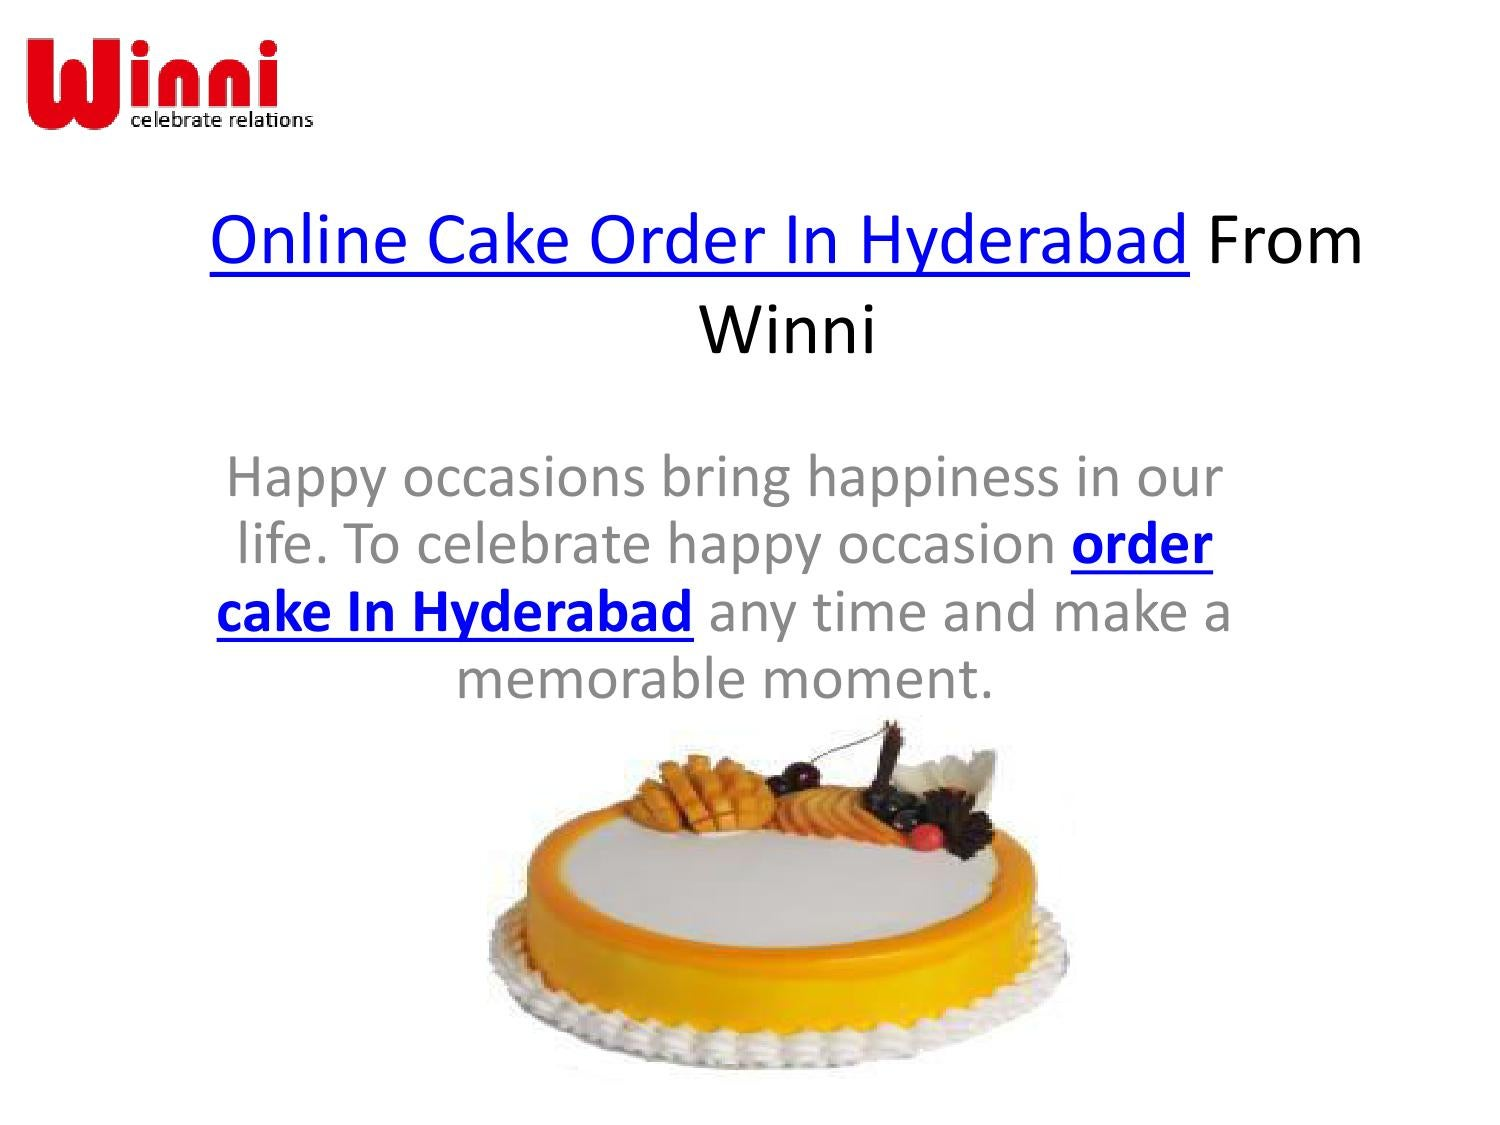 Order Online Cake In Hyderabad From Winni By Winniin